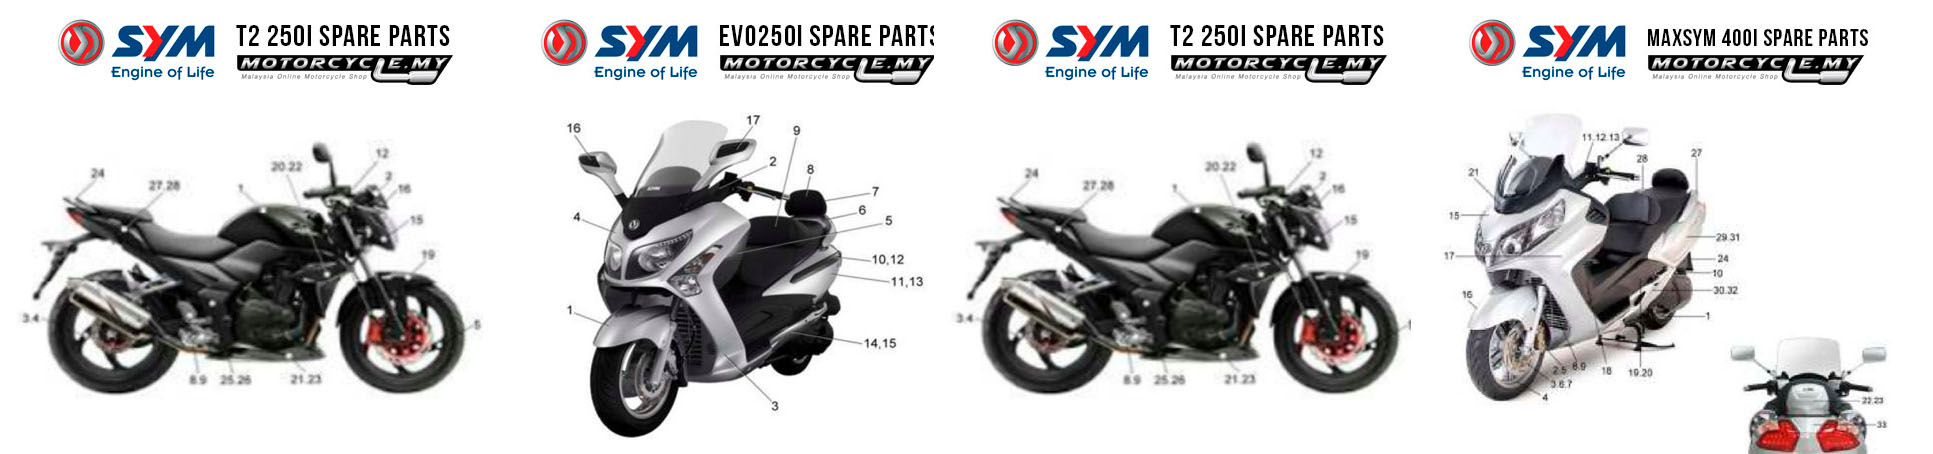 SYM Spare Parts Malaysia